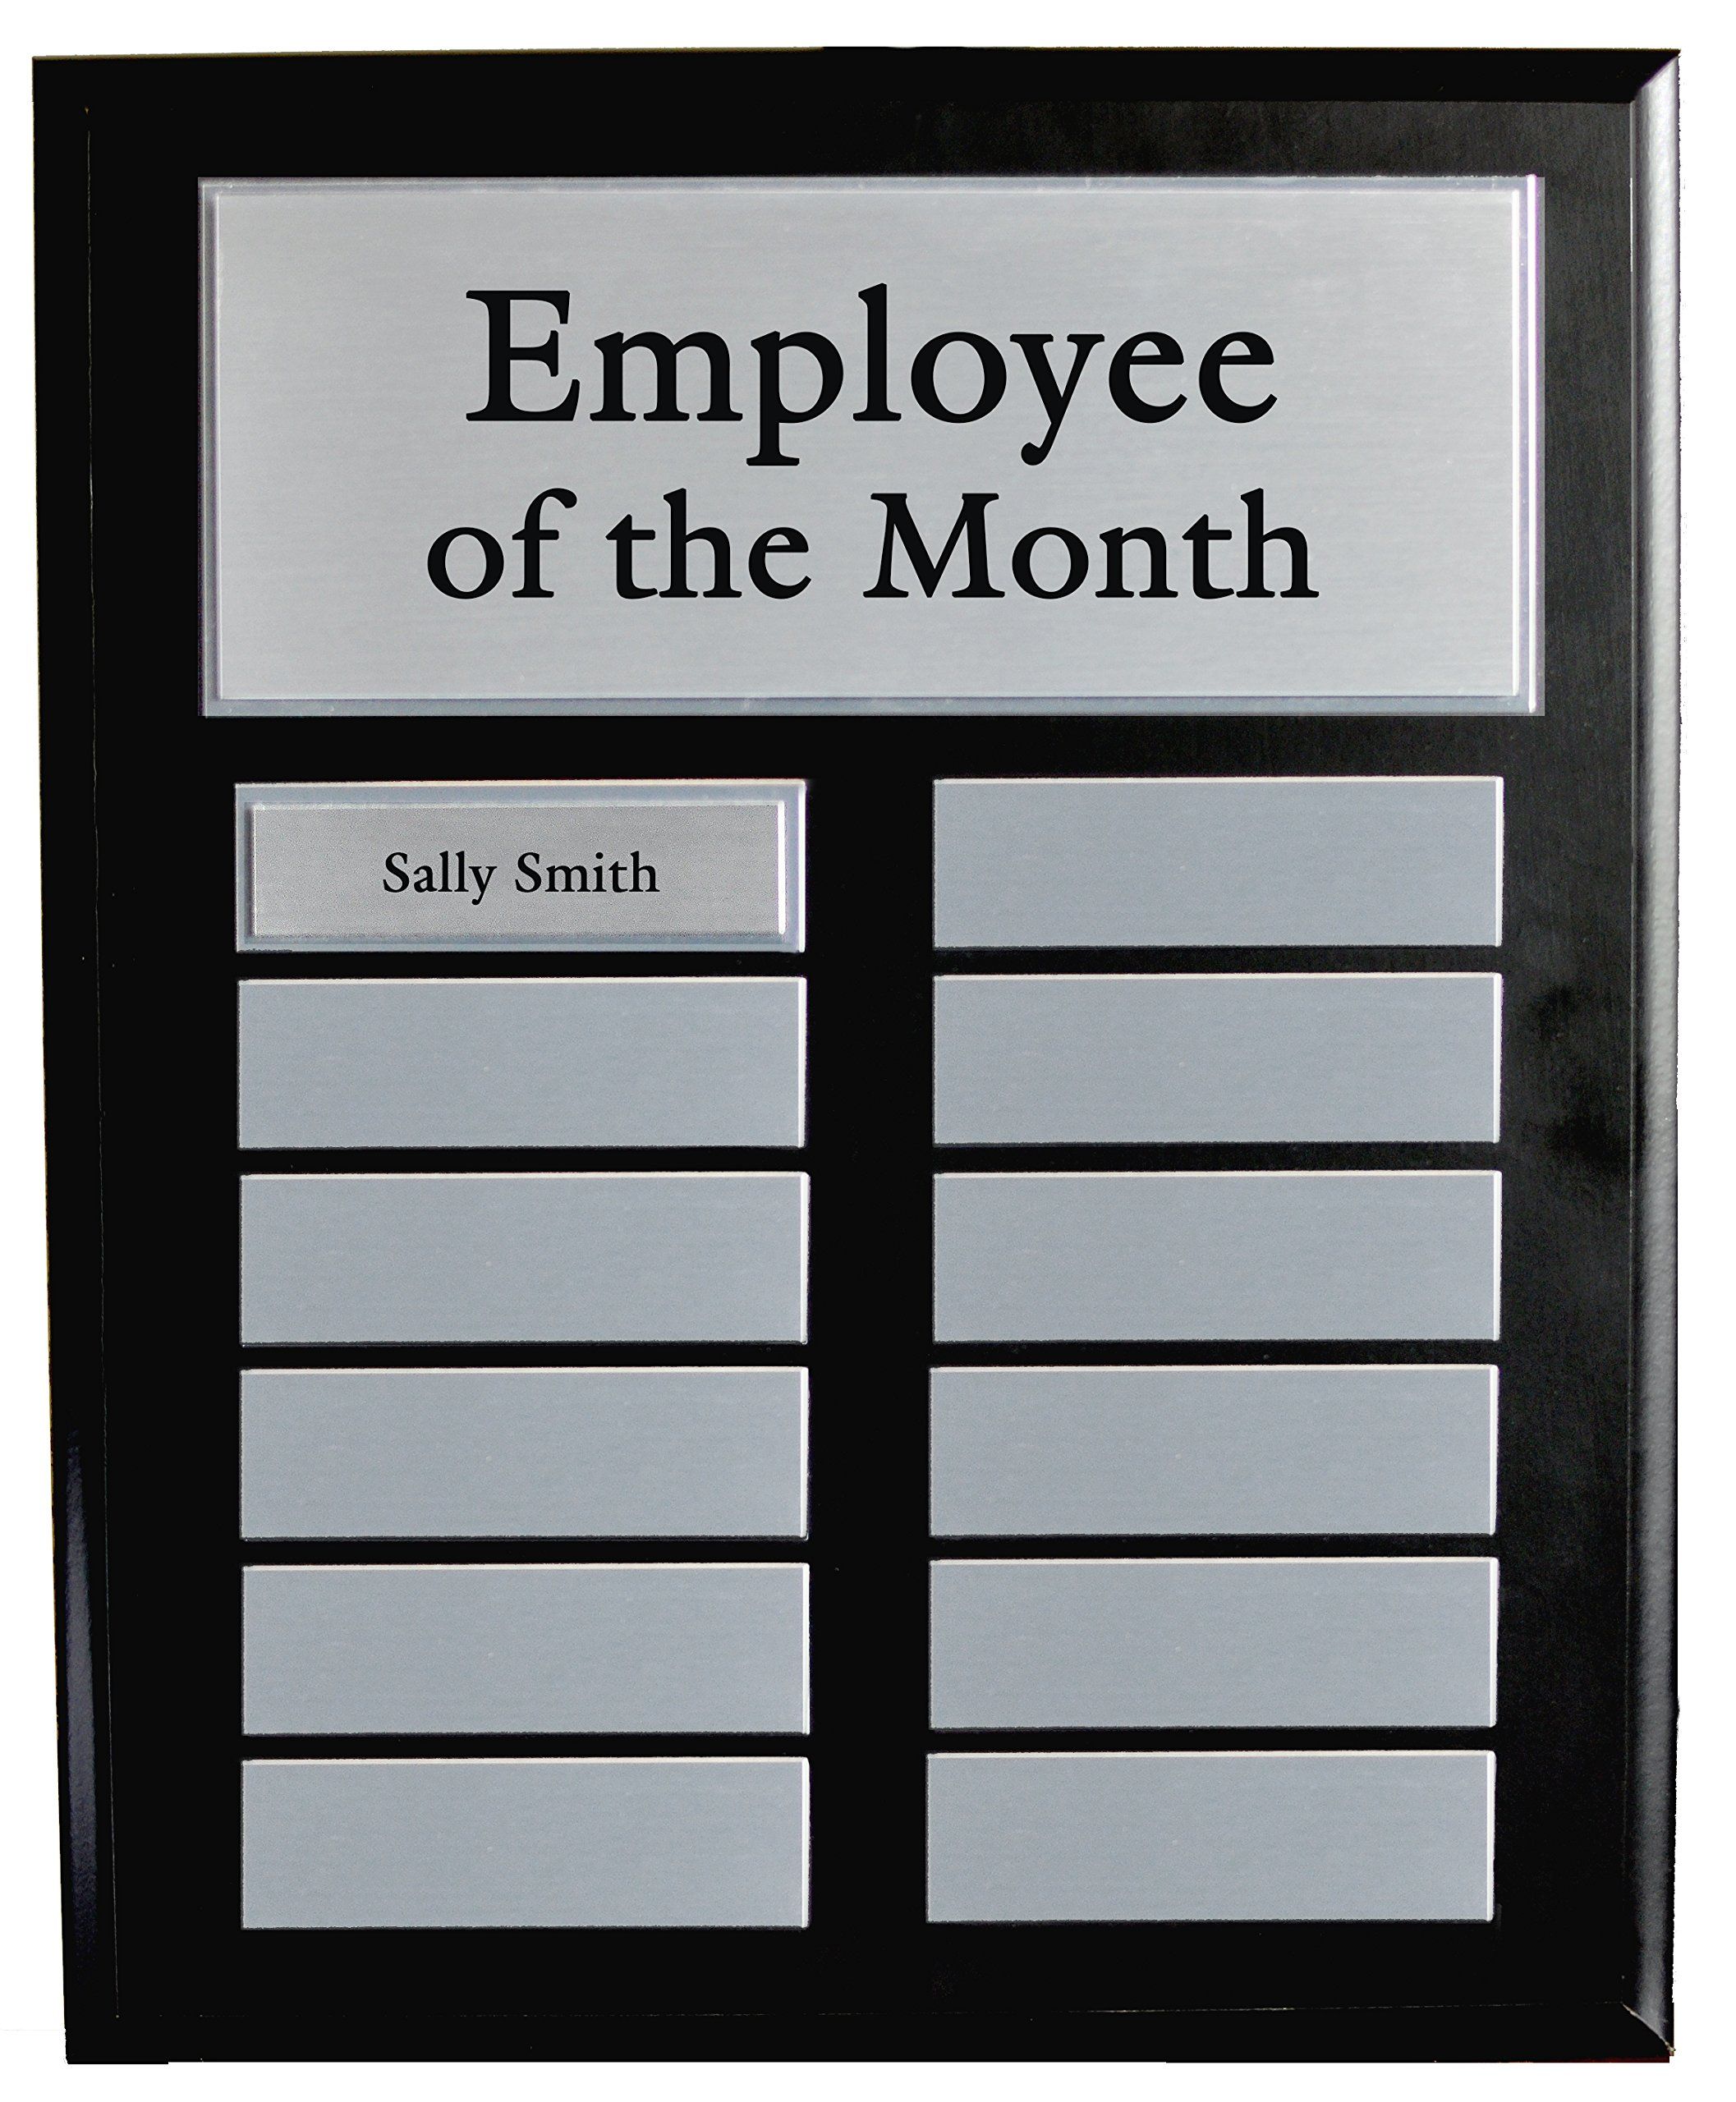 Employee of the Month Award - Perpetual Employee of the Month Plaque - 11'' x 13'' (Plague) by Holmes Stamp & Sign